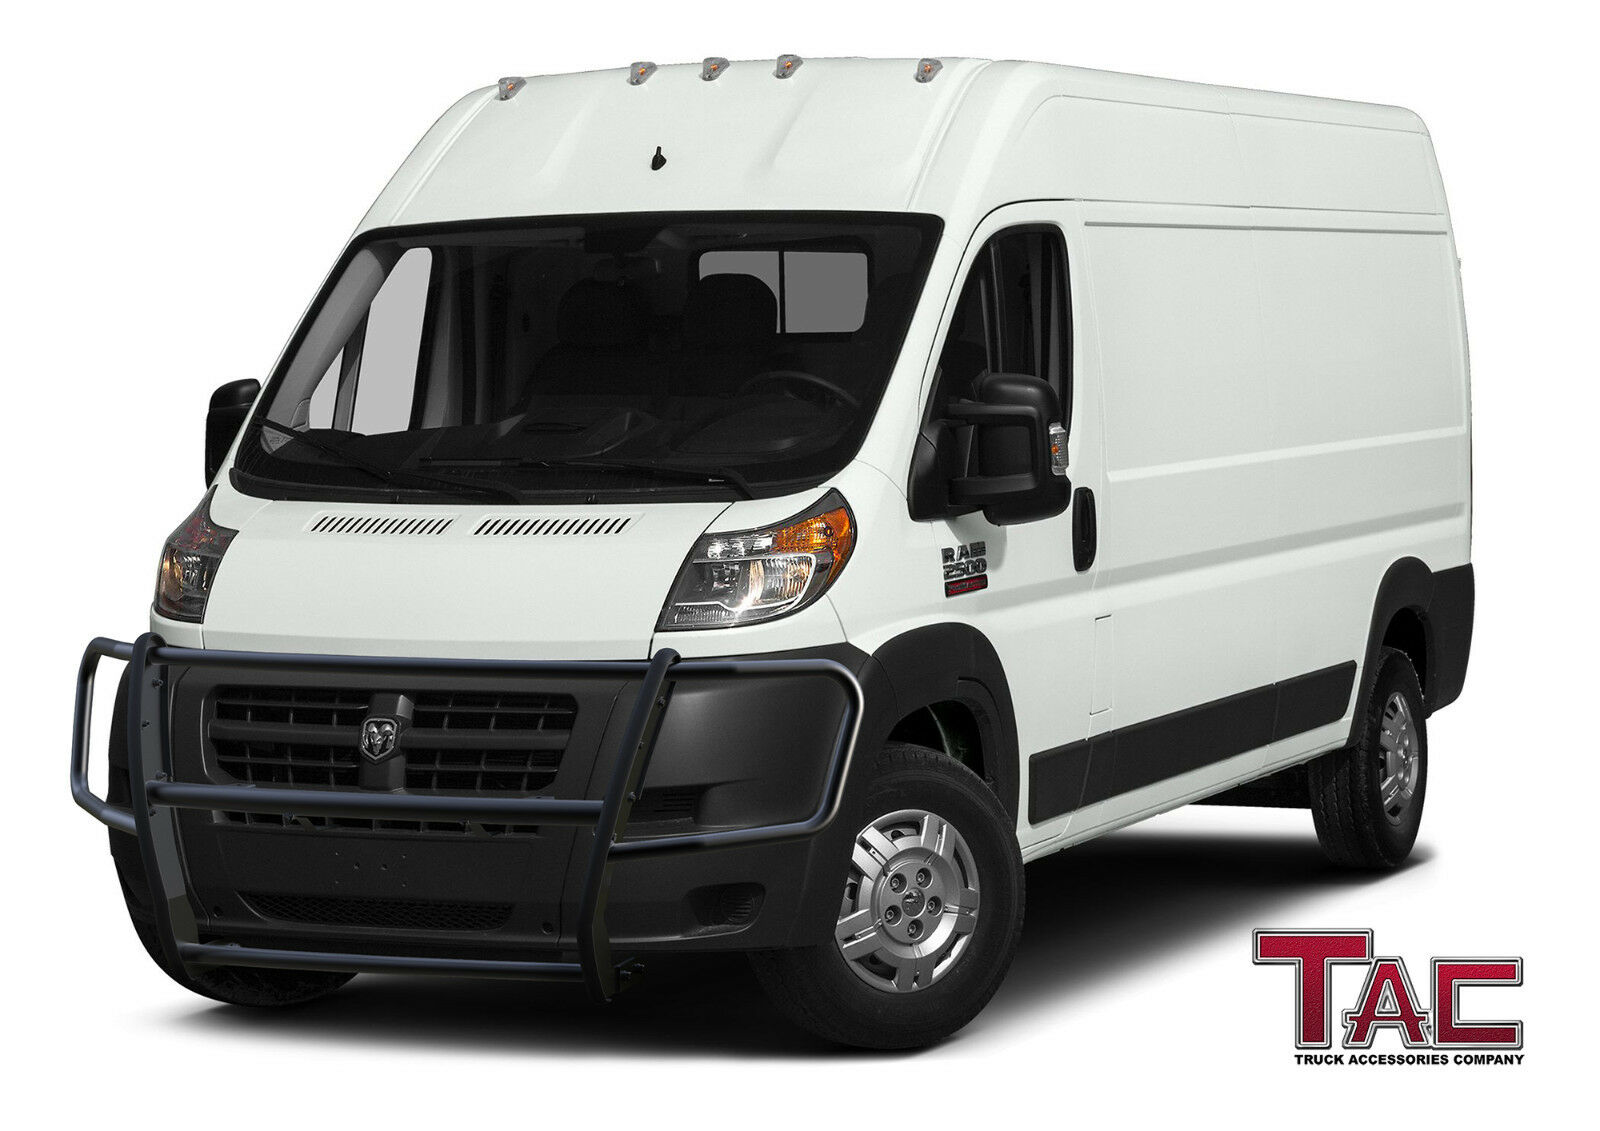 Full Size Van >> Details About Tac Fit 14 18 Dodge Ram Promaster Van Full Size Front Bumper Grill Guard Black